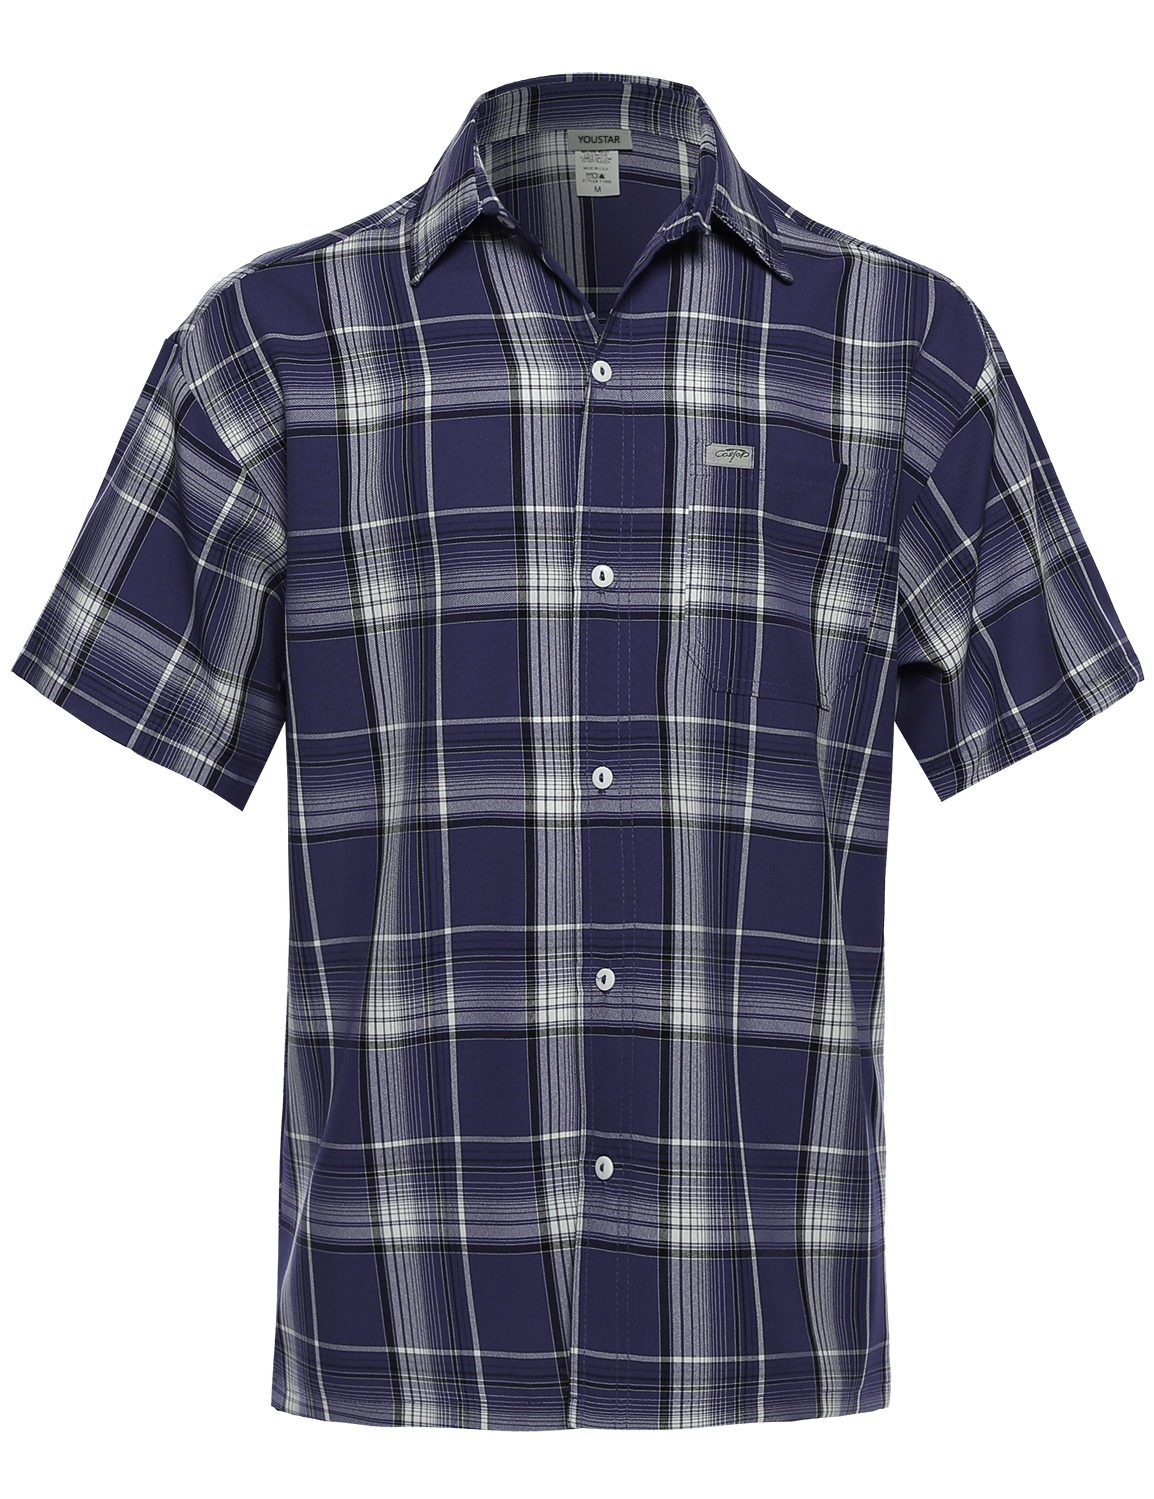 Fashionoutfit men 39 s loose fit plaid checkered short sleeve Short sleeve plaid shirts